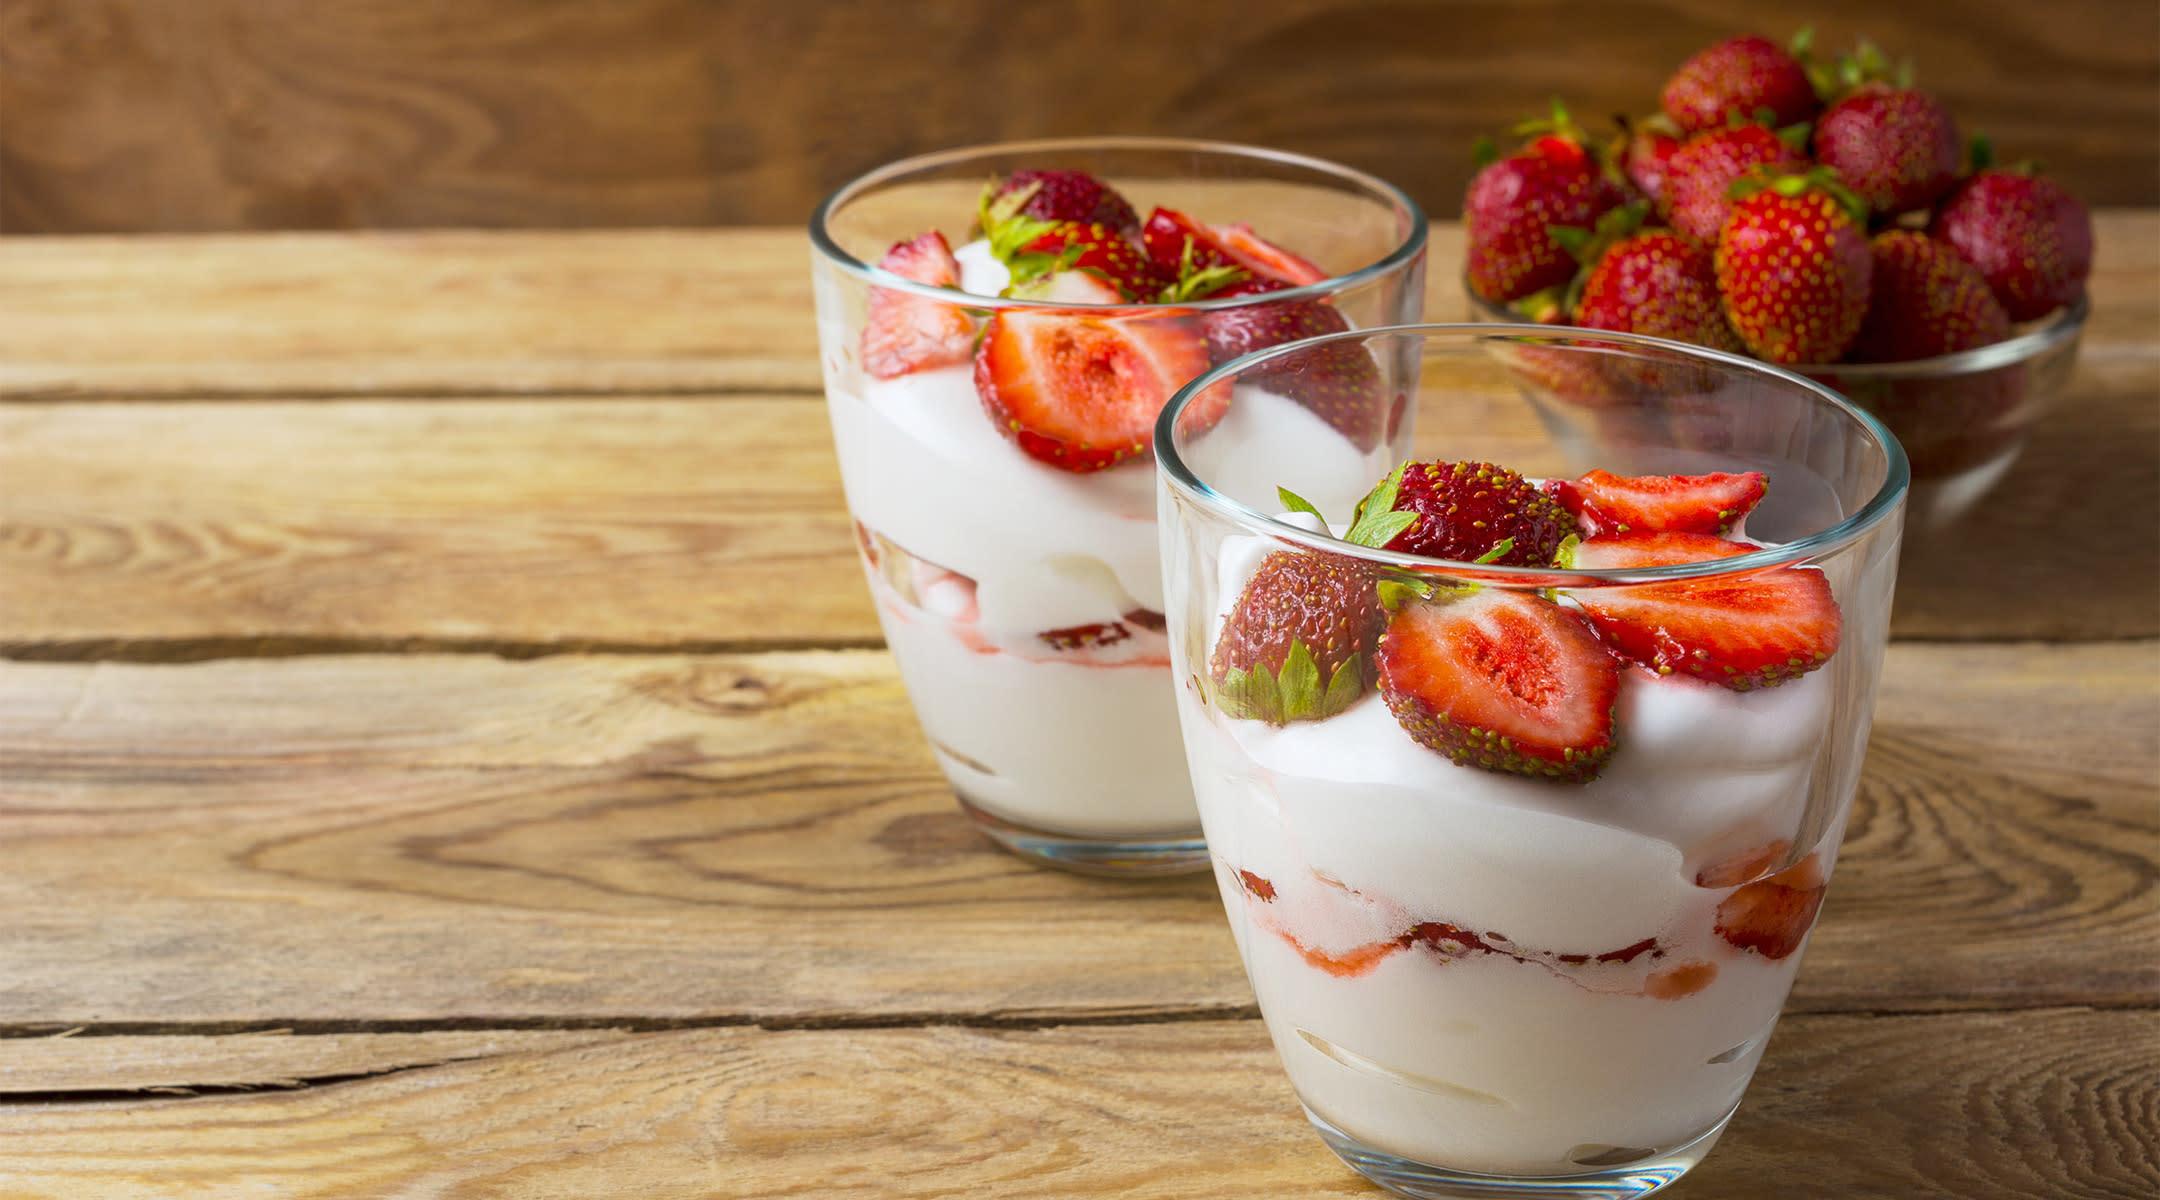 Healthy snack for pregnant women, yogurt and strawberries